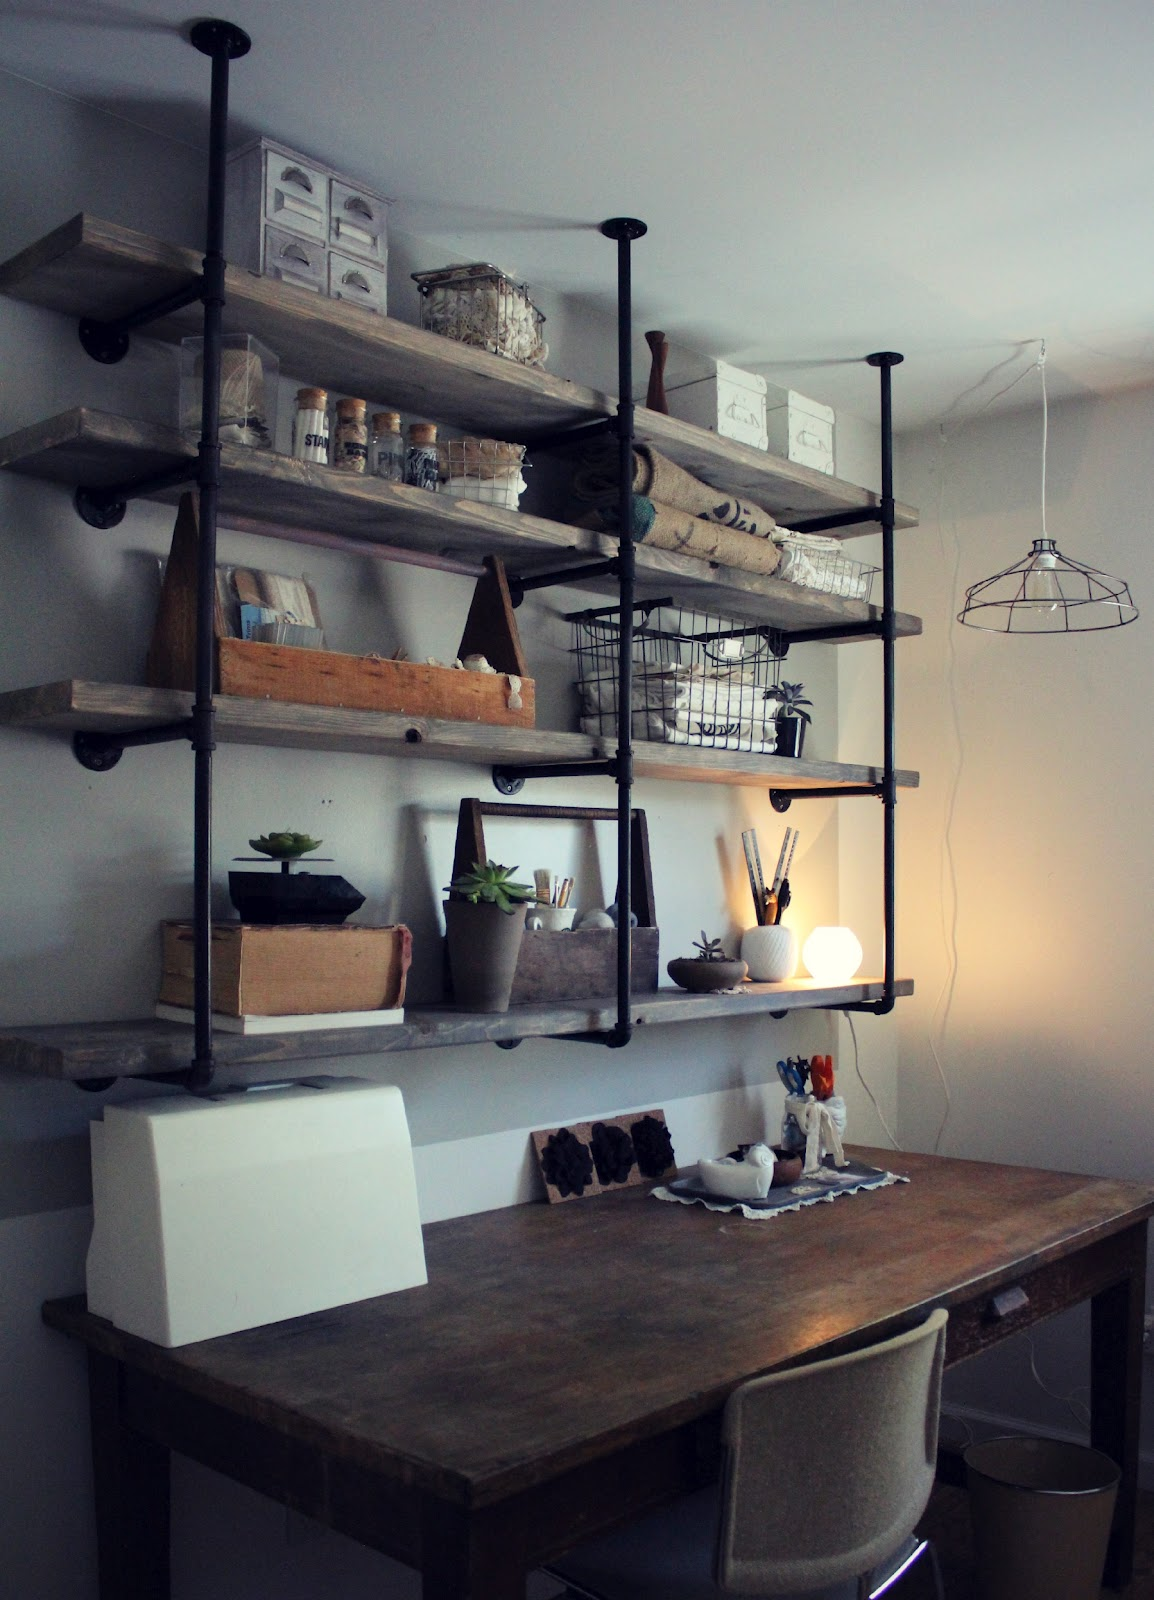 sylvie liv industrial rustic shelf tutorial. Black Bedroom Furniture Sets. Home Design Ideas